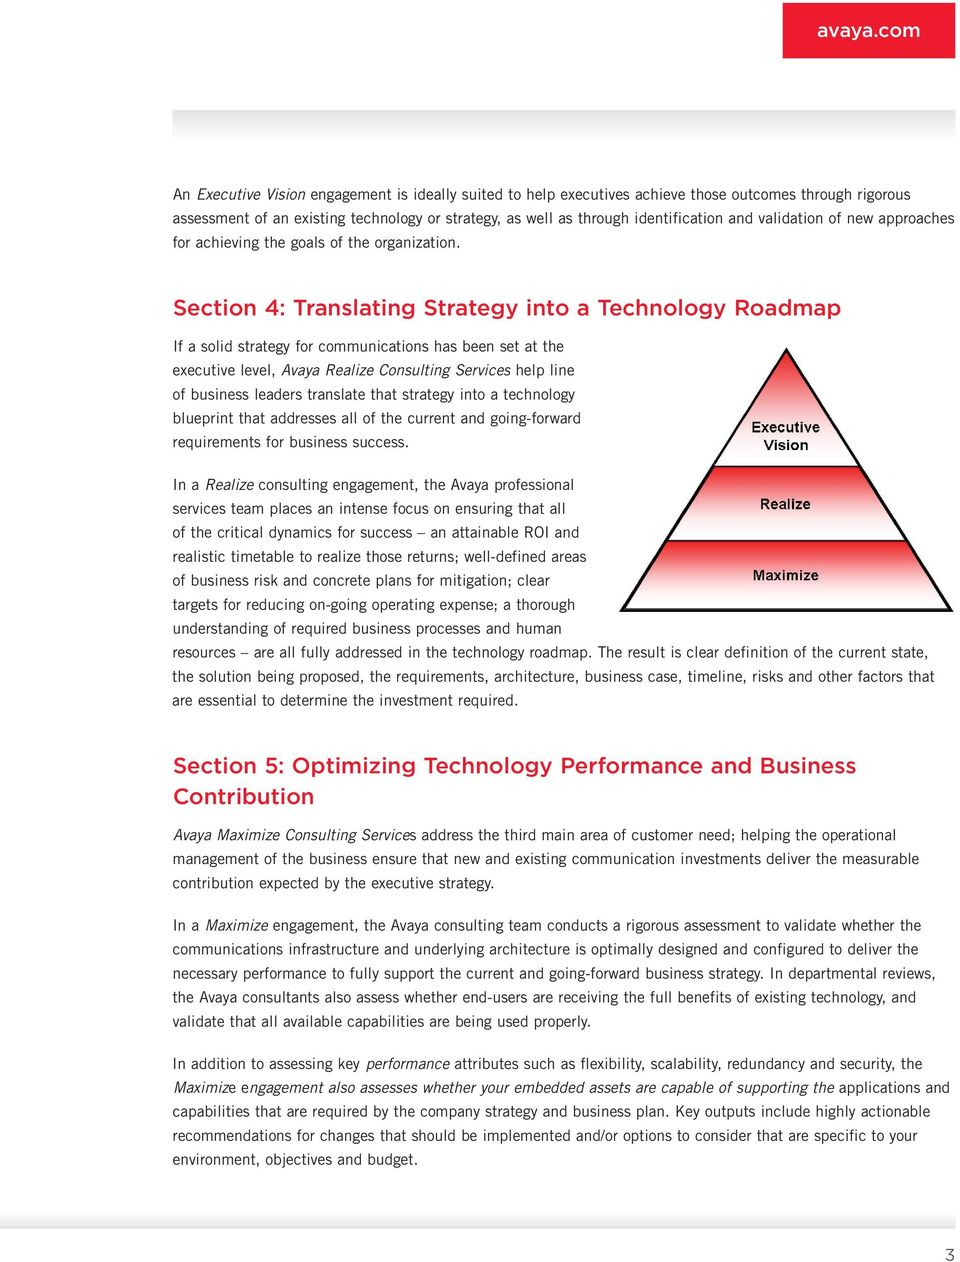 Section 4: Translating Strategy into a Technology Roadmap If a solid strategy for communications has been set at the executive level, Avaya Realize Consulting Services help line of business leaders